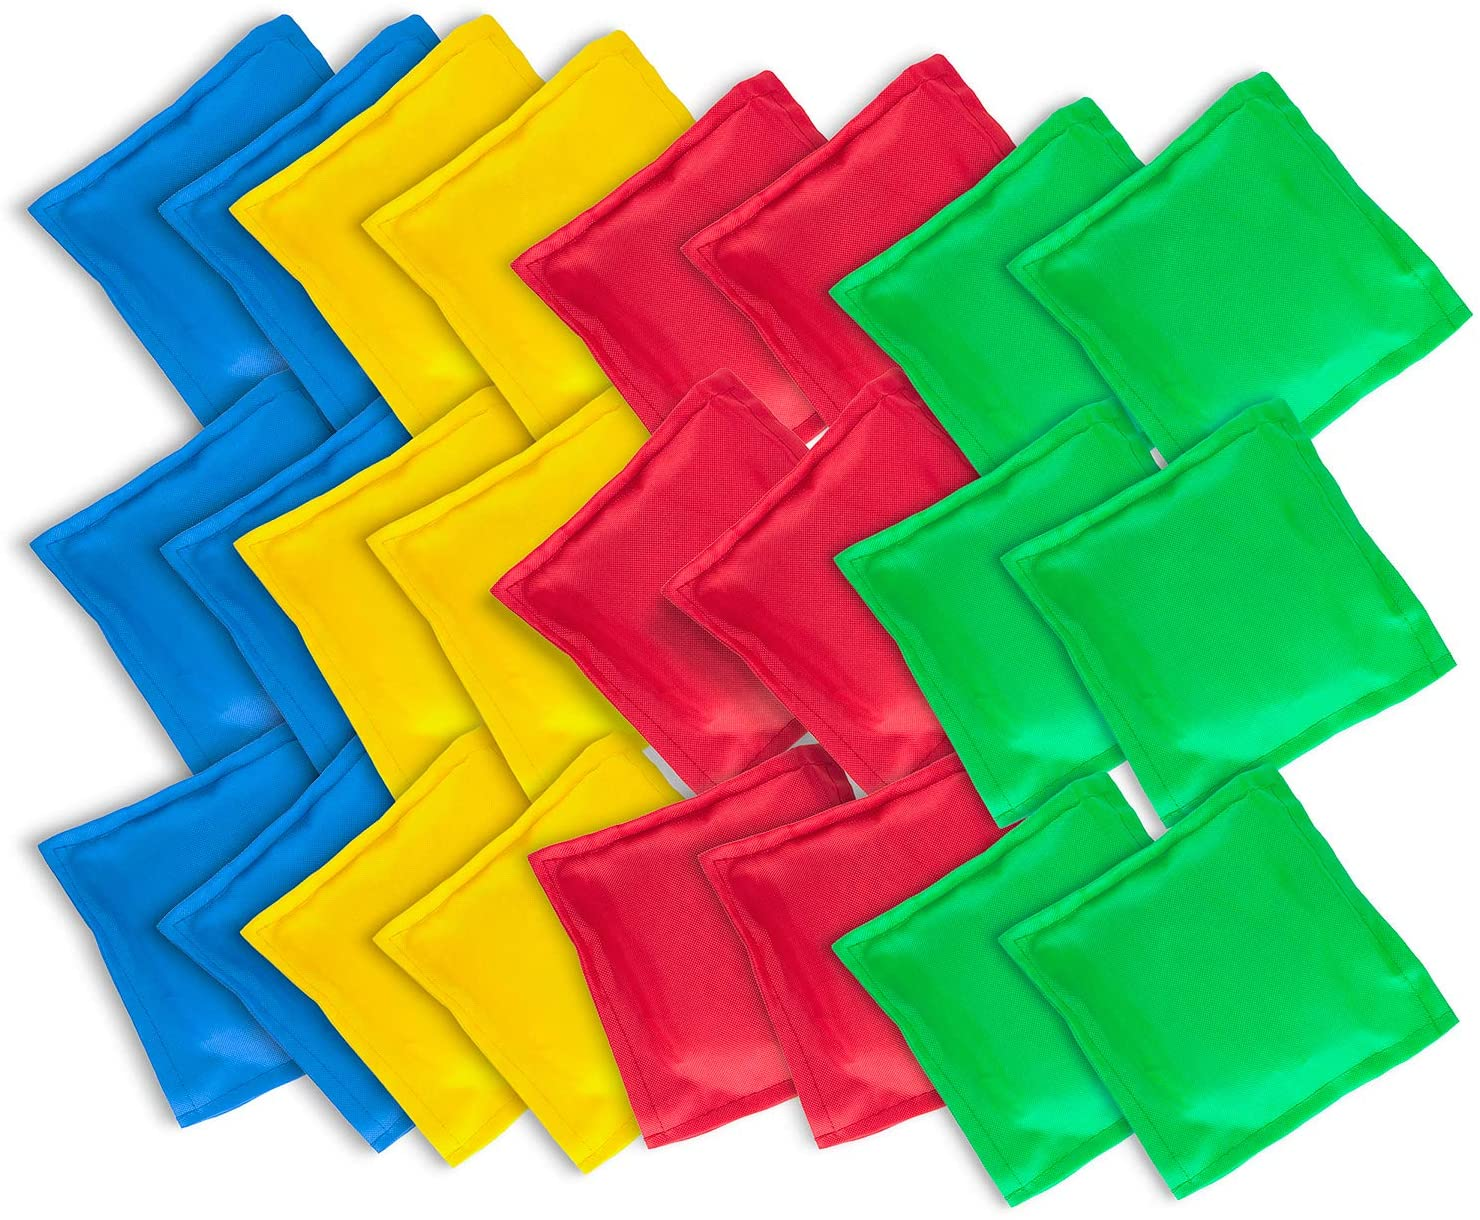 Super Z Outlet Nylon Cornhole Bean Bags Toy Set Sack Hand Toss Games Weights for Kids (5 x 5 Assorted Colors) (24 Pack)